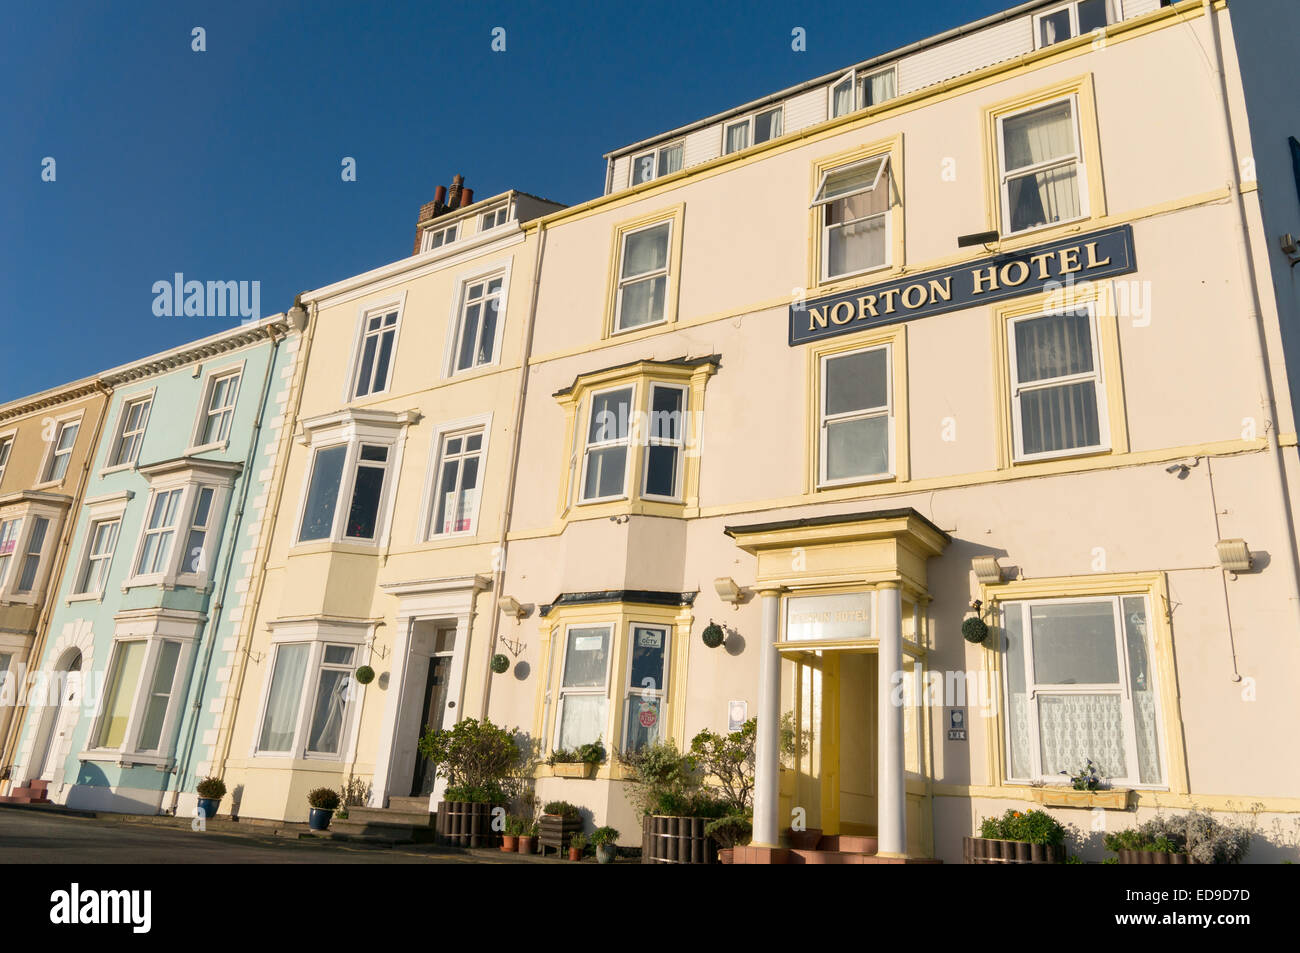 Norton Hotel, Seaton Carew, north east England, UK Stock Photo